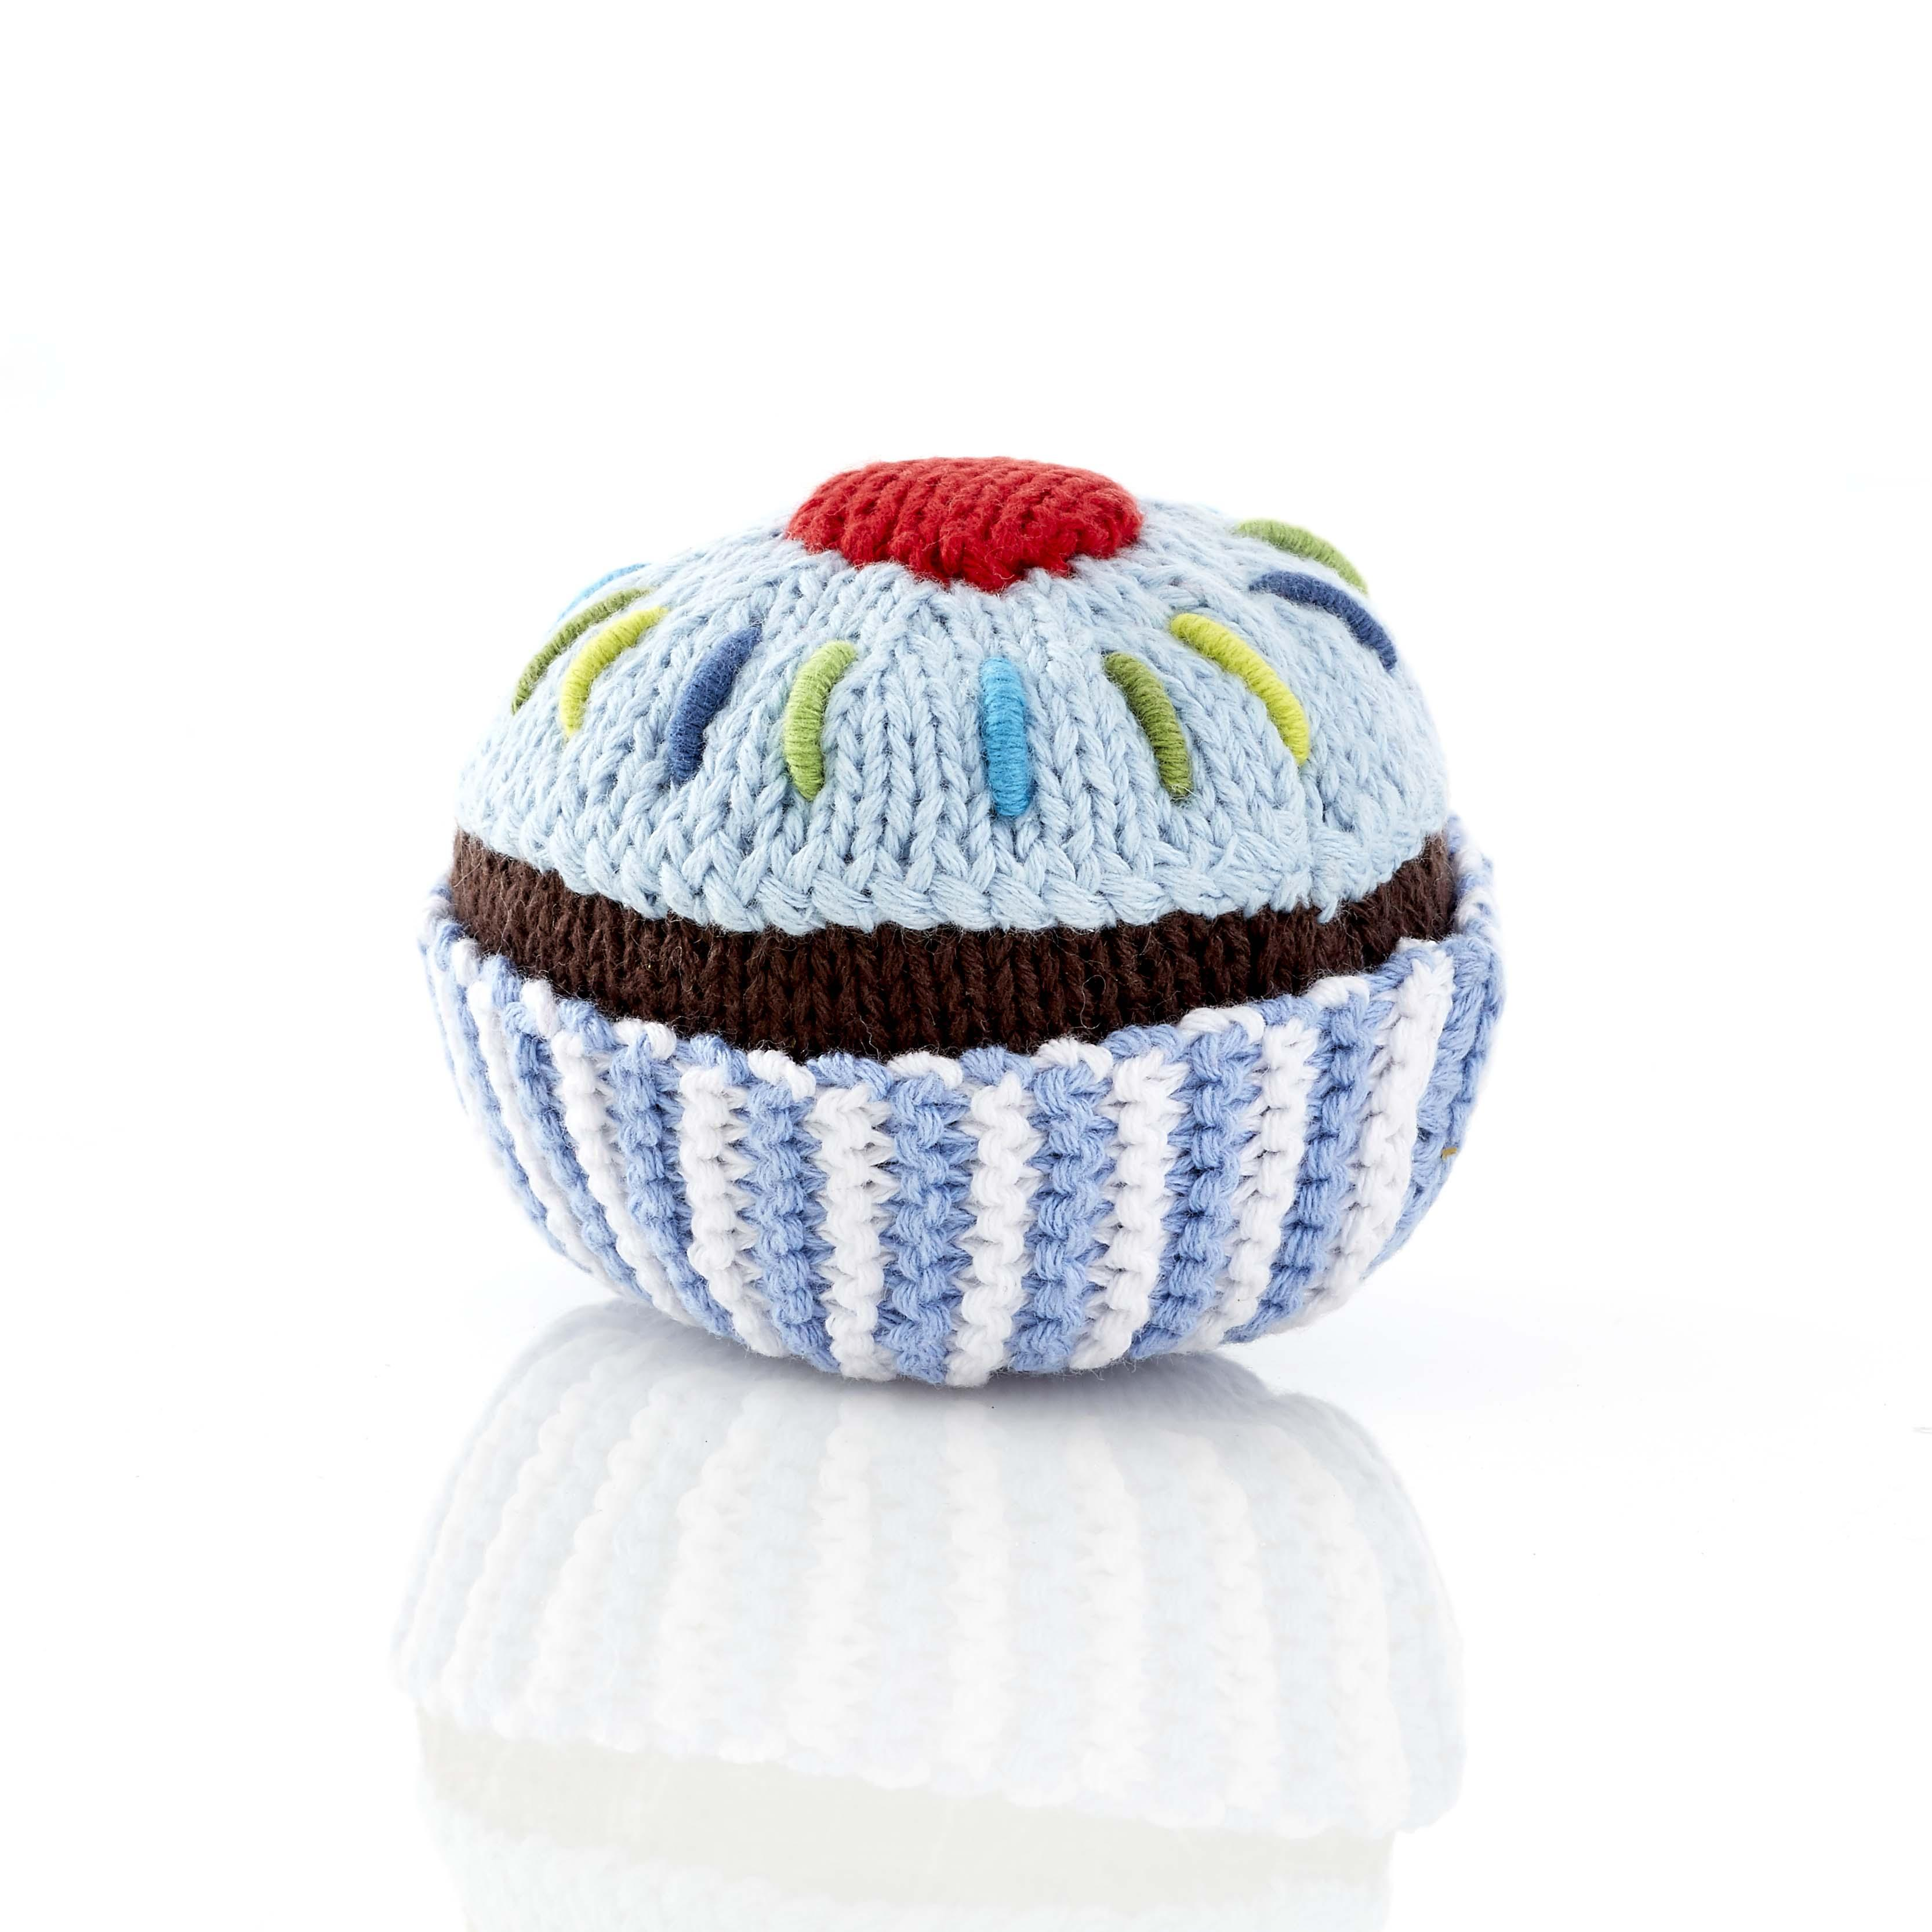 small blue cupcake baby rattle with pale blue icing and cherry on top